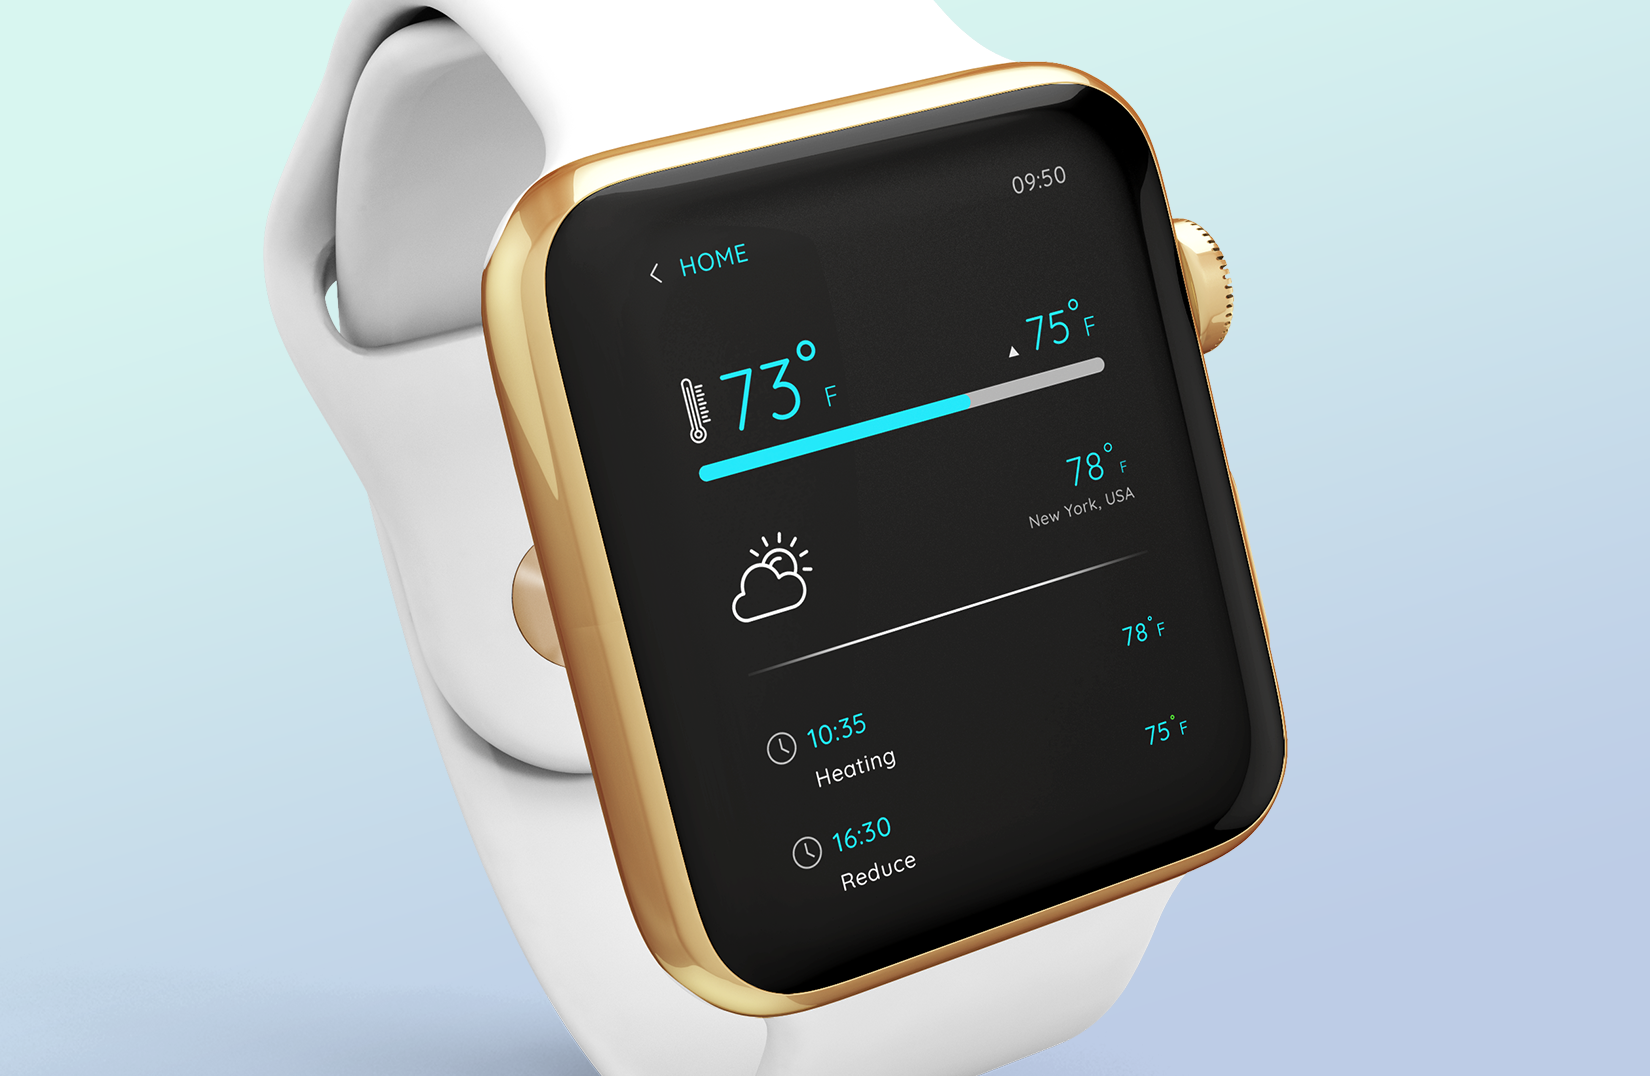 smart home watch app with loaded features